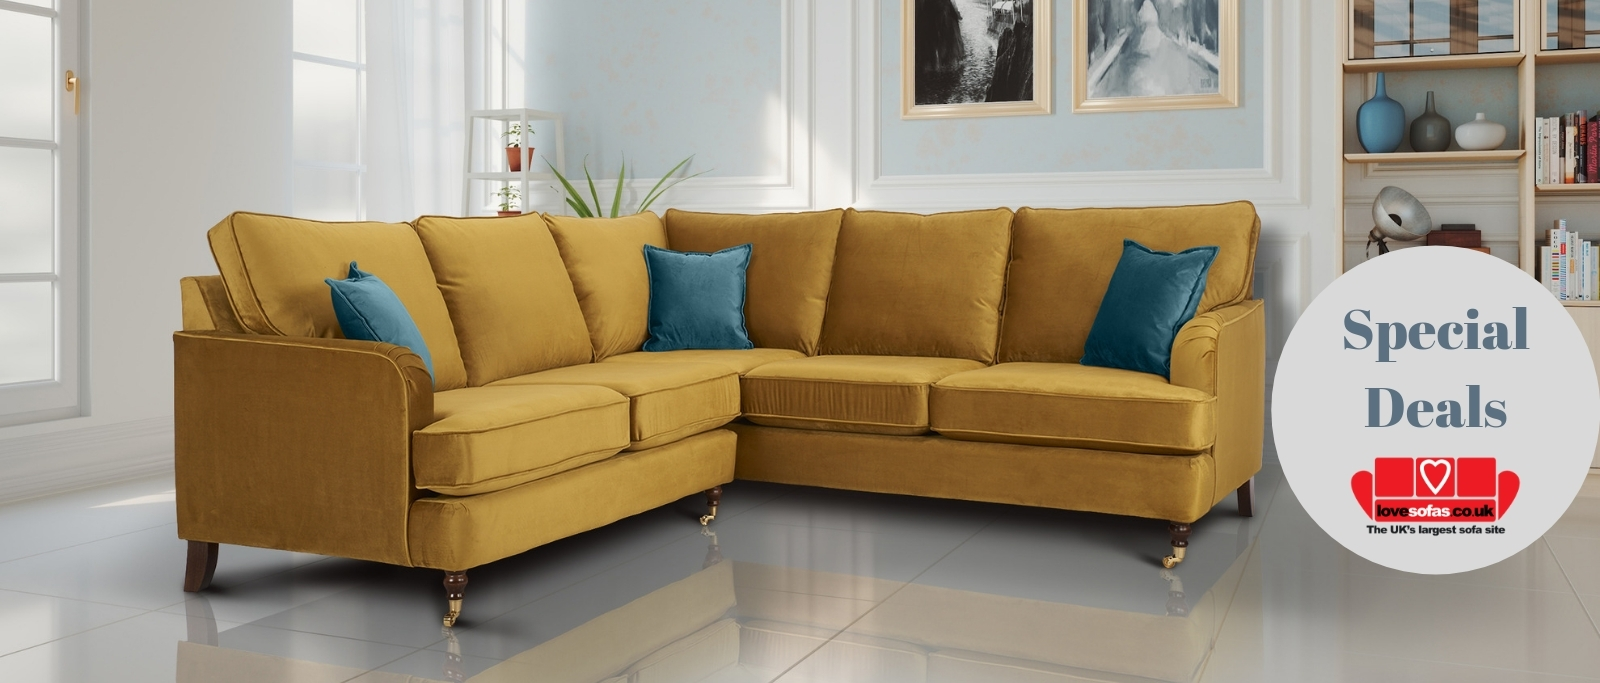 Sofa And Home Voucher Code Love Sofas The Uk S Largest Sofa Website